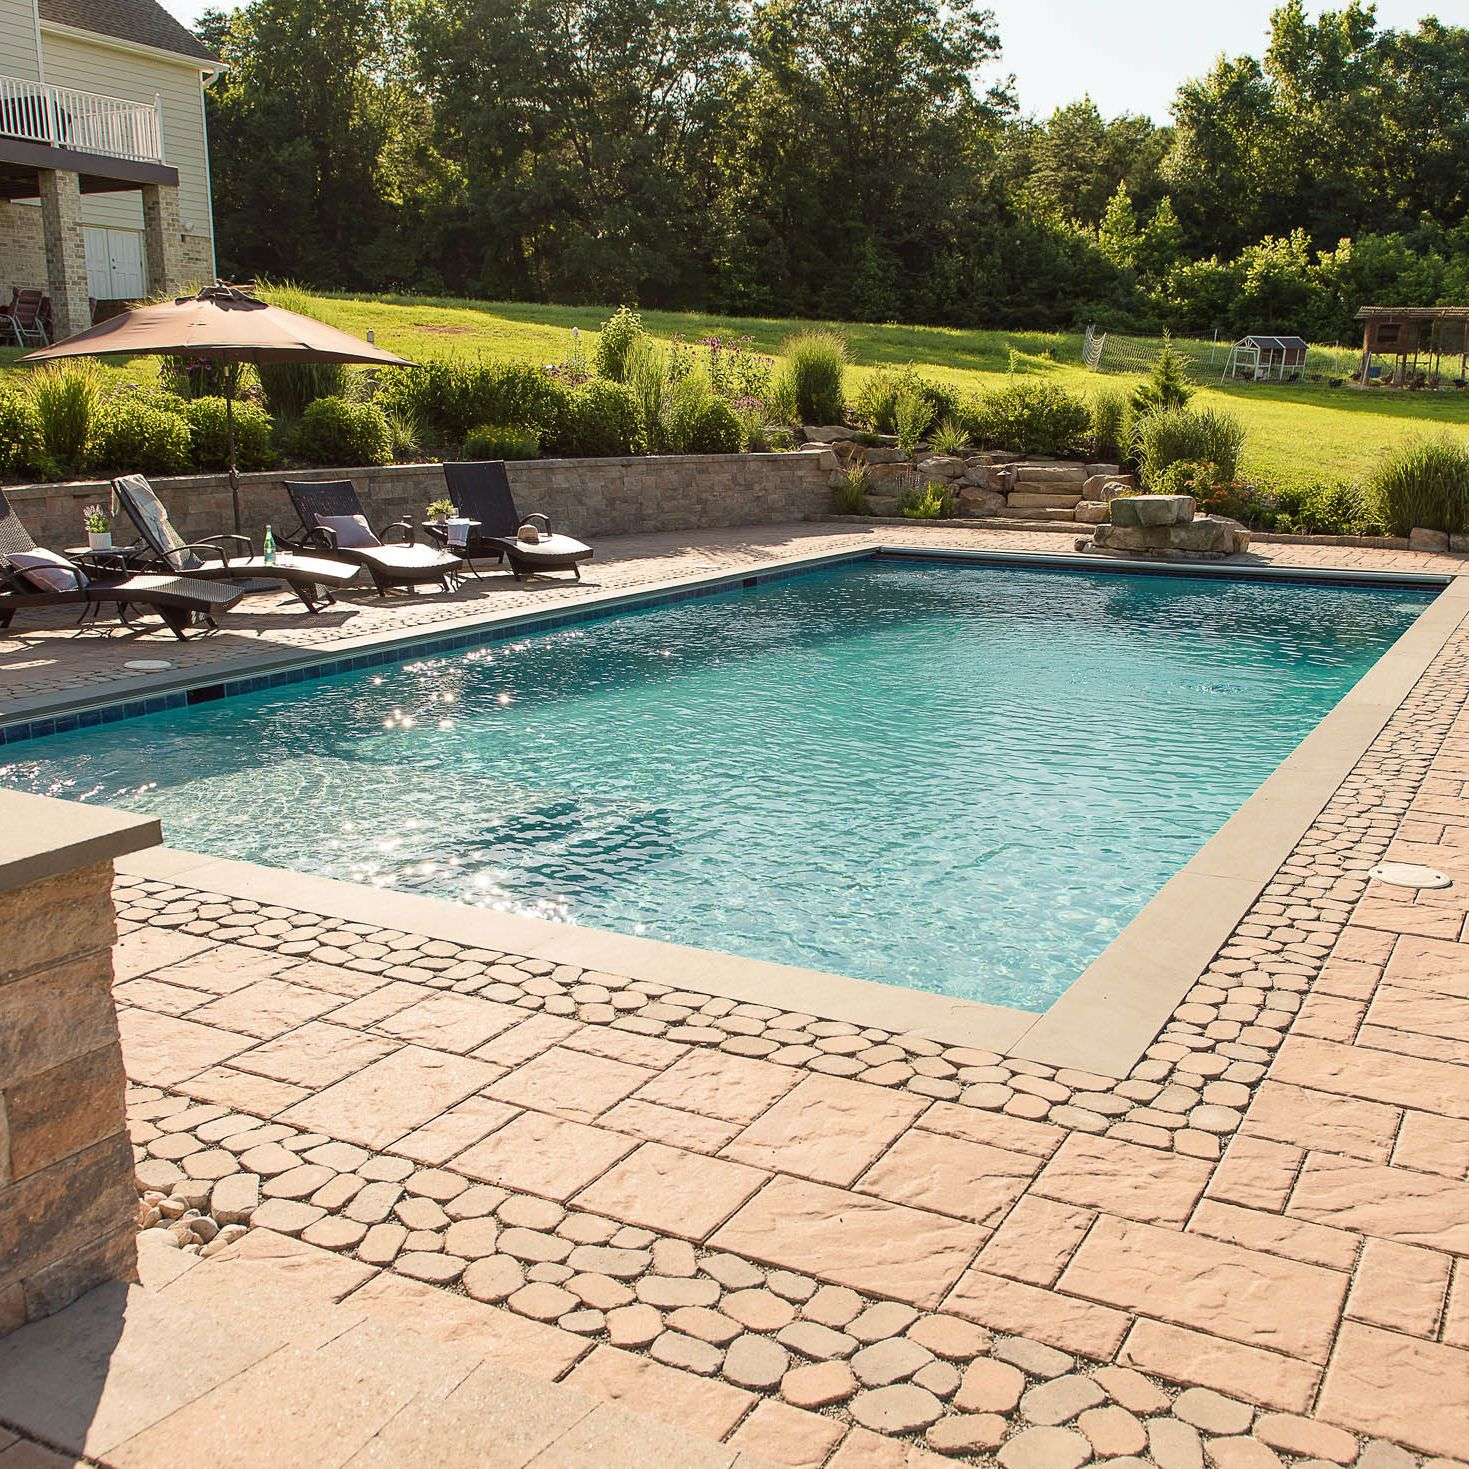 An Eco-Friendly Poolscape in Montpelier